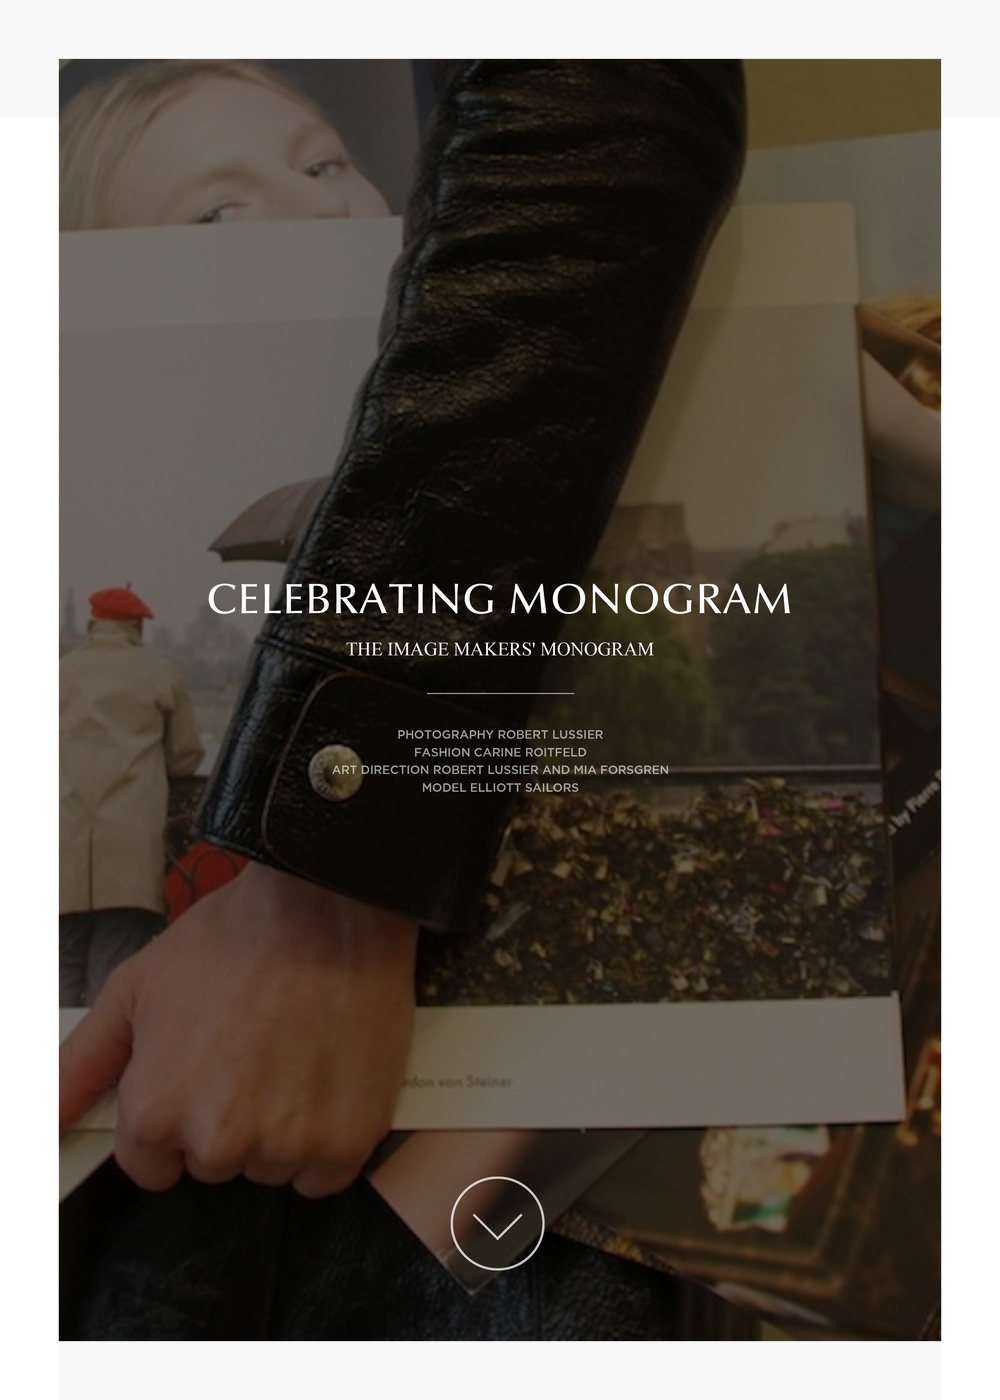 CR Fashion Book - CELEBRATING MONOGRAM-1.jpg